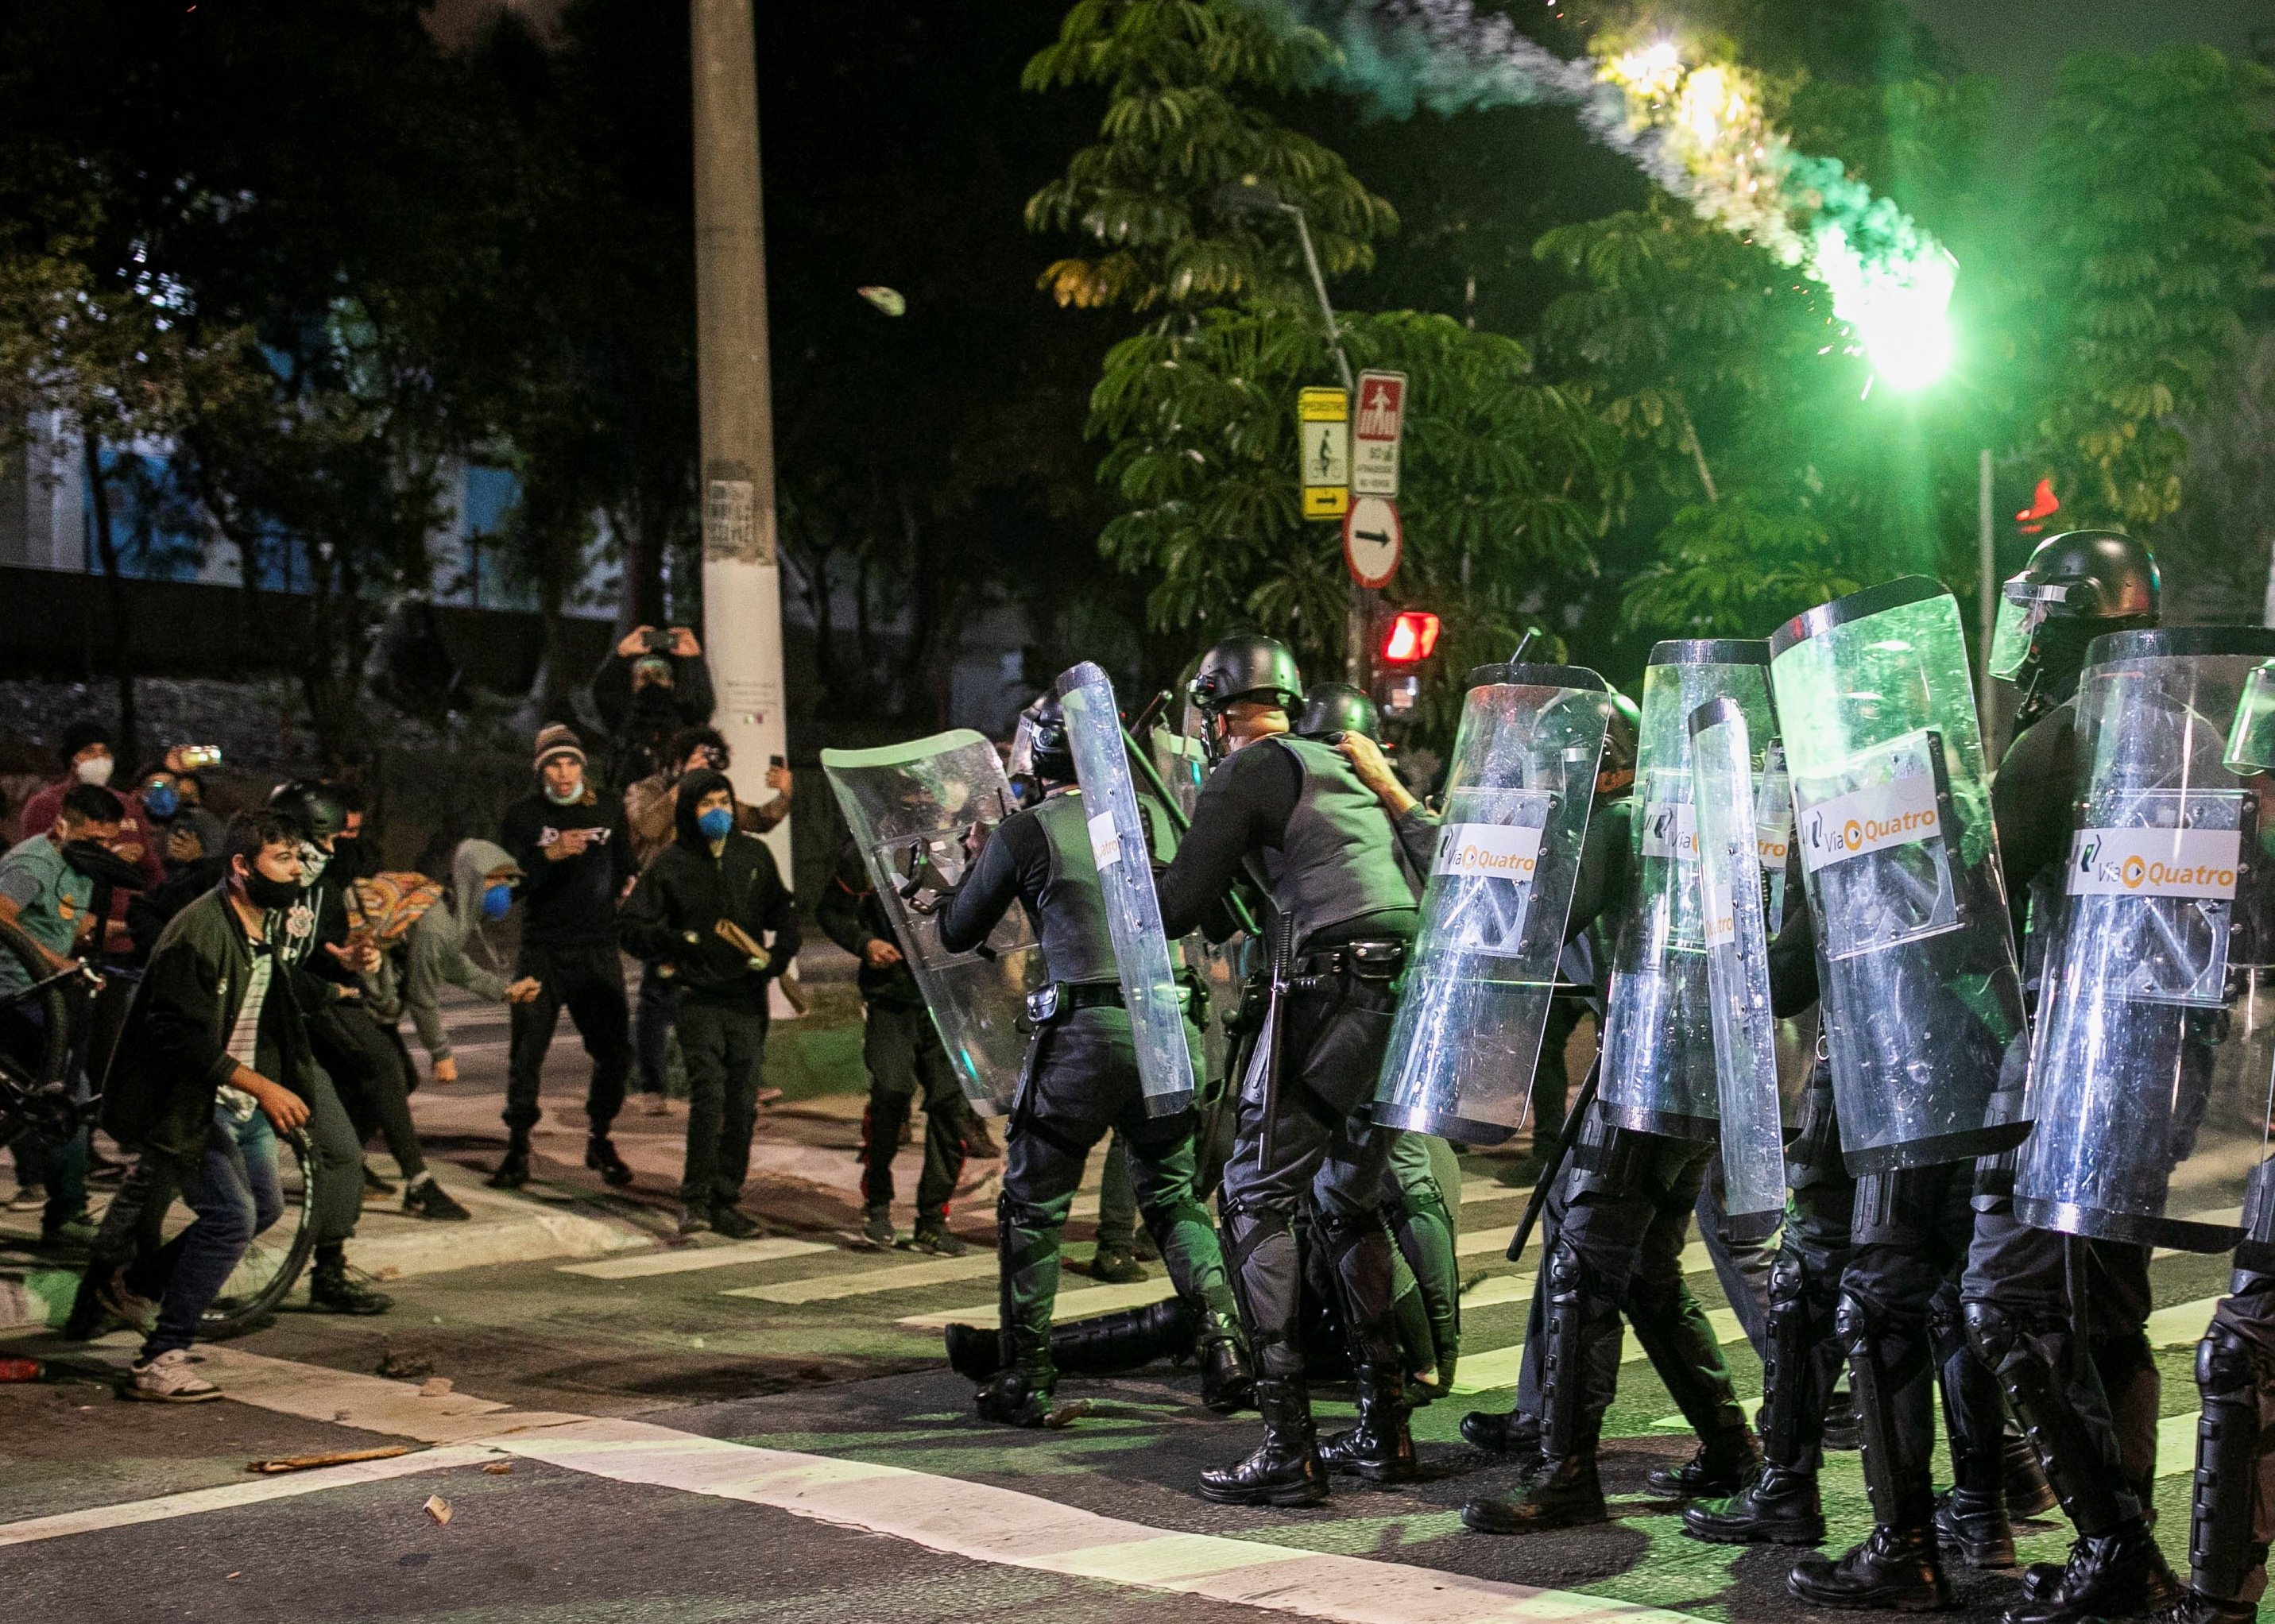 Riot police clash with demonstrators during a protest against Brazil's President Jair Bolsonaro, in Sao Paulo, Brazil, July 3, 2021. REUTERS/Roosevelt Cassio